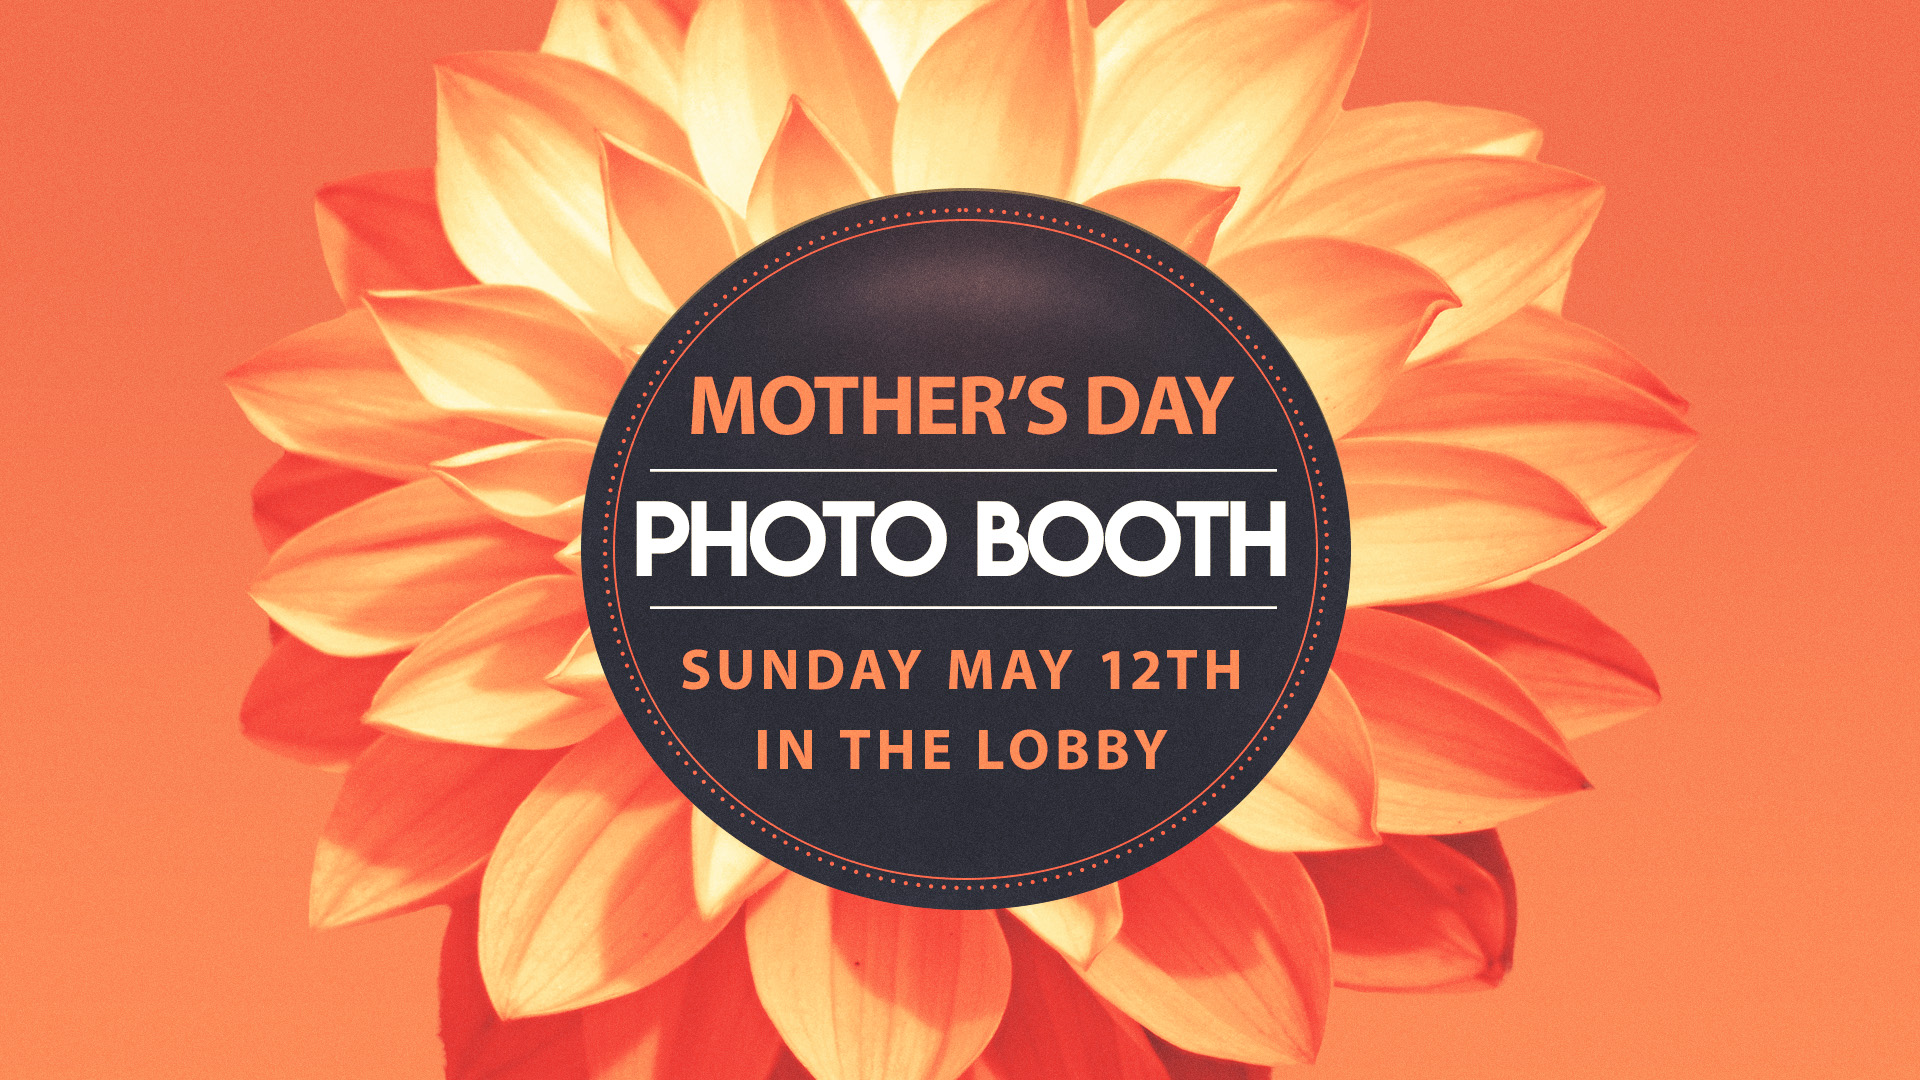 MothersDayPhotoBooth1920.jpg